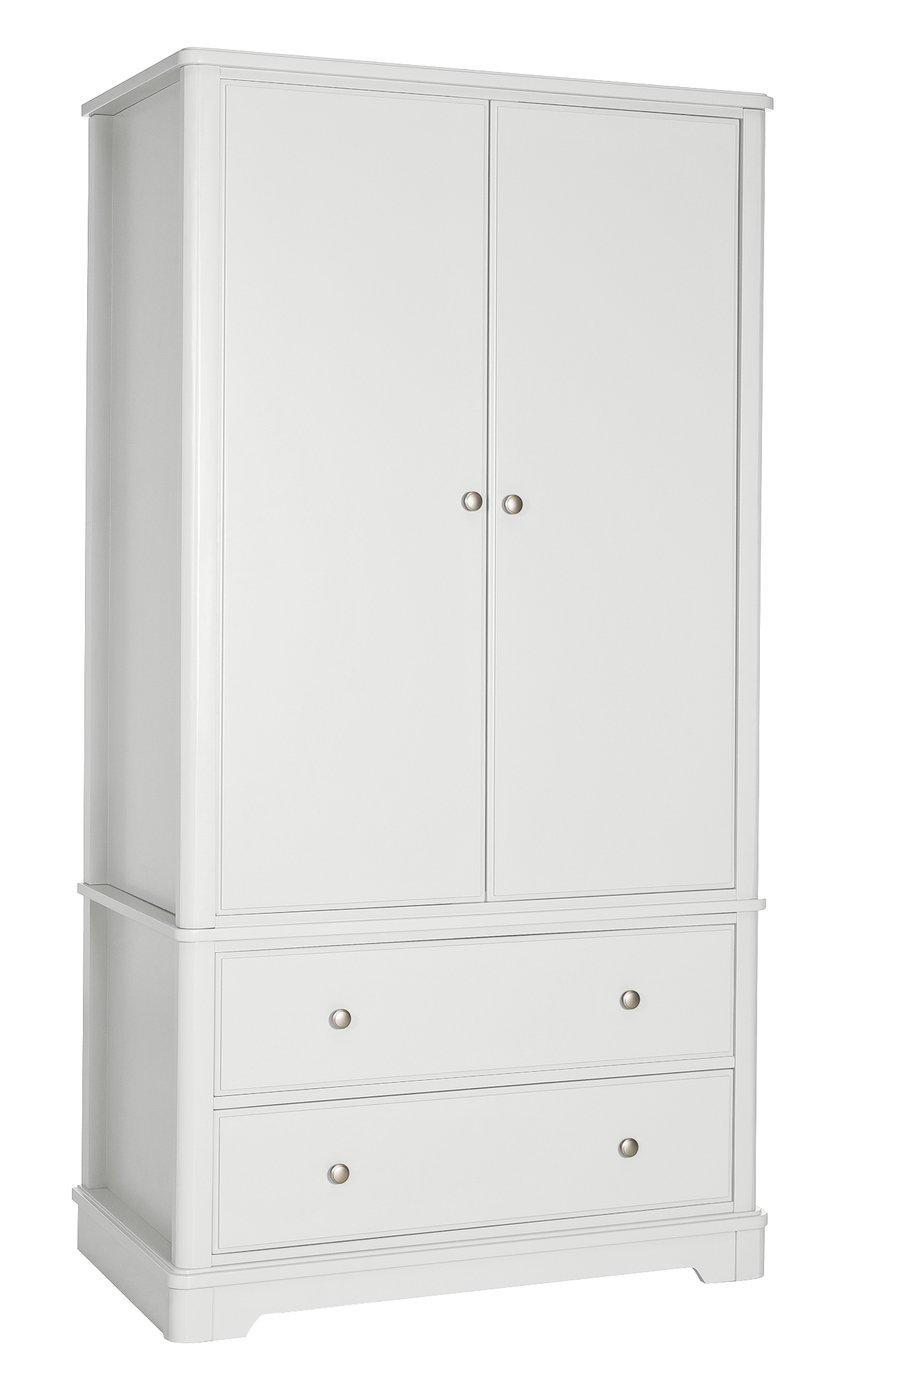 Argos Home Ashbourne 2 Door 2 Drawer Wardrobe